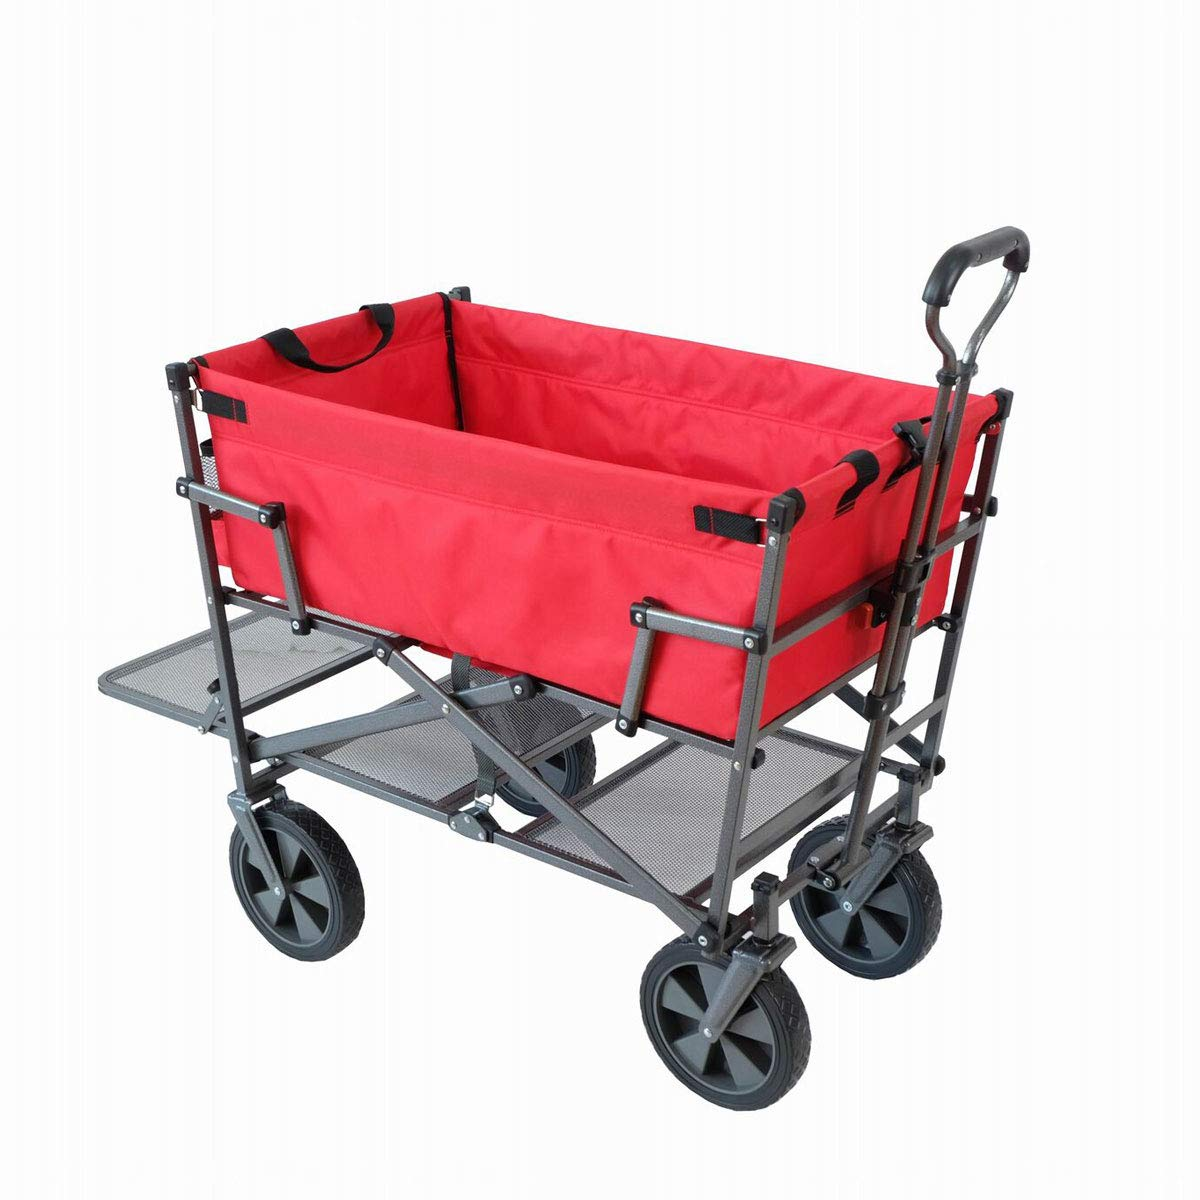 Mac Sports Heavy Duty Steel Double Decker Collapsible Yard Cart Wagon, Red by Mac Sports